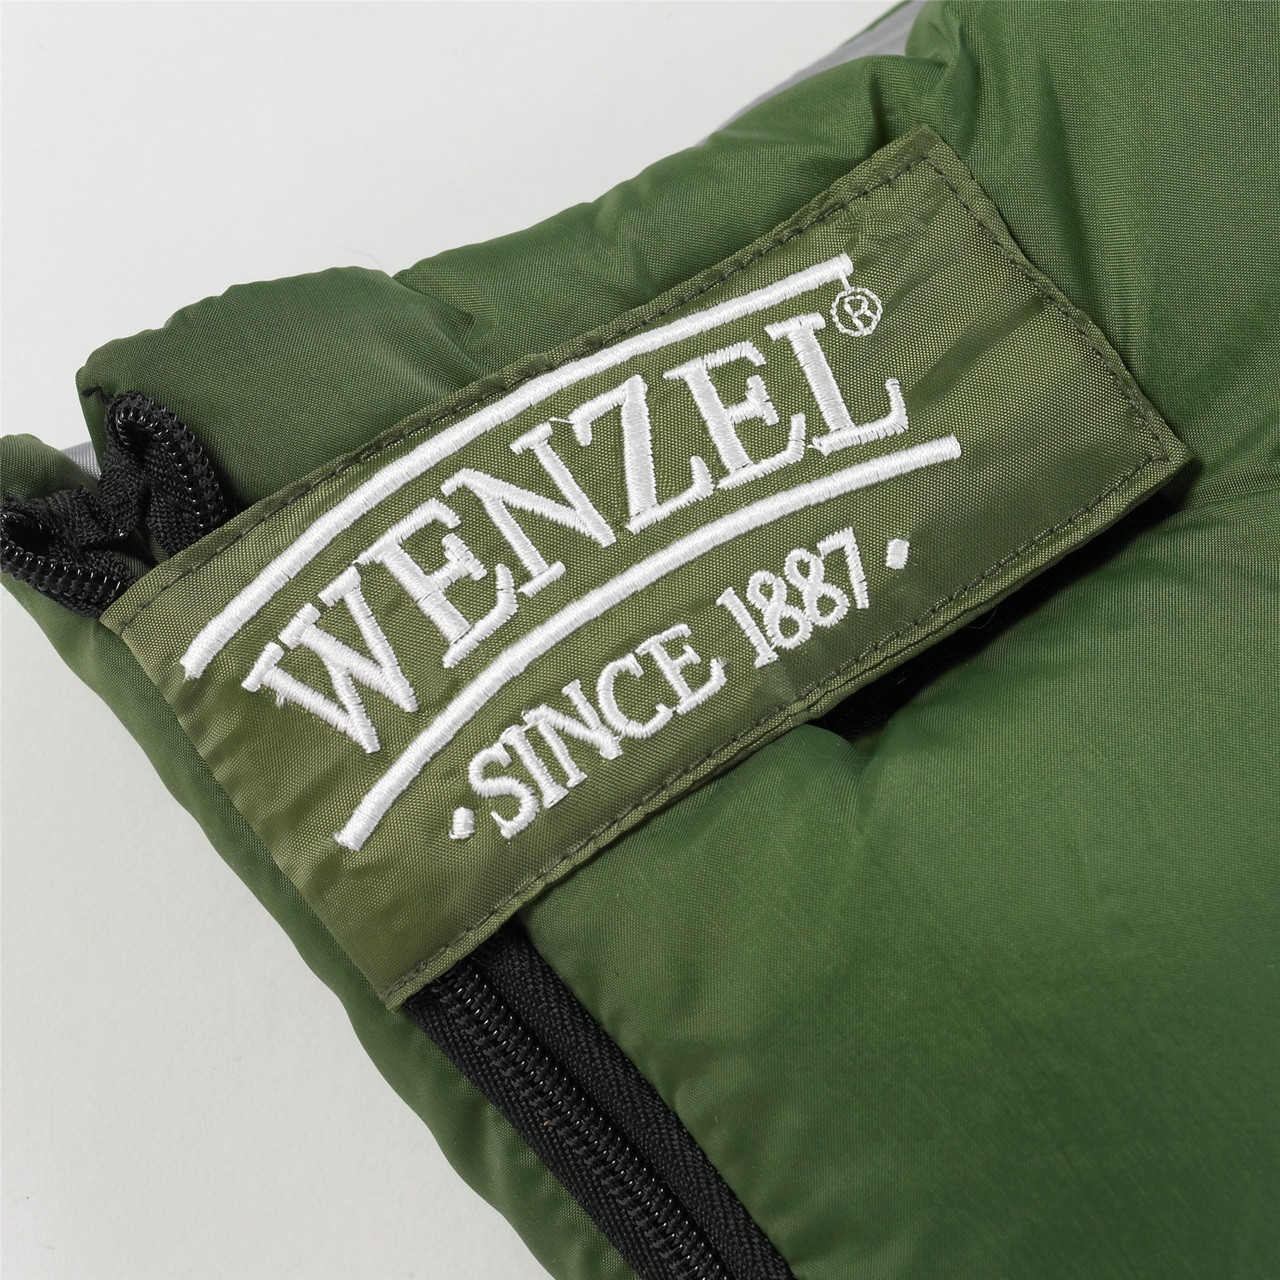 Close up view of the Velcro latch over the zipper on the Wenzel Kids Summer Camp 40 degree sleeping bag, green